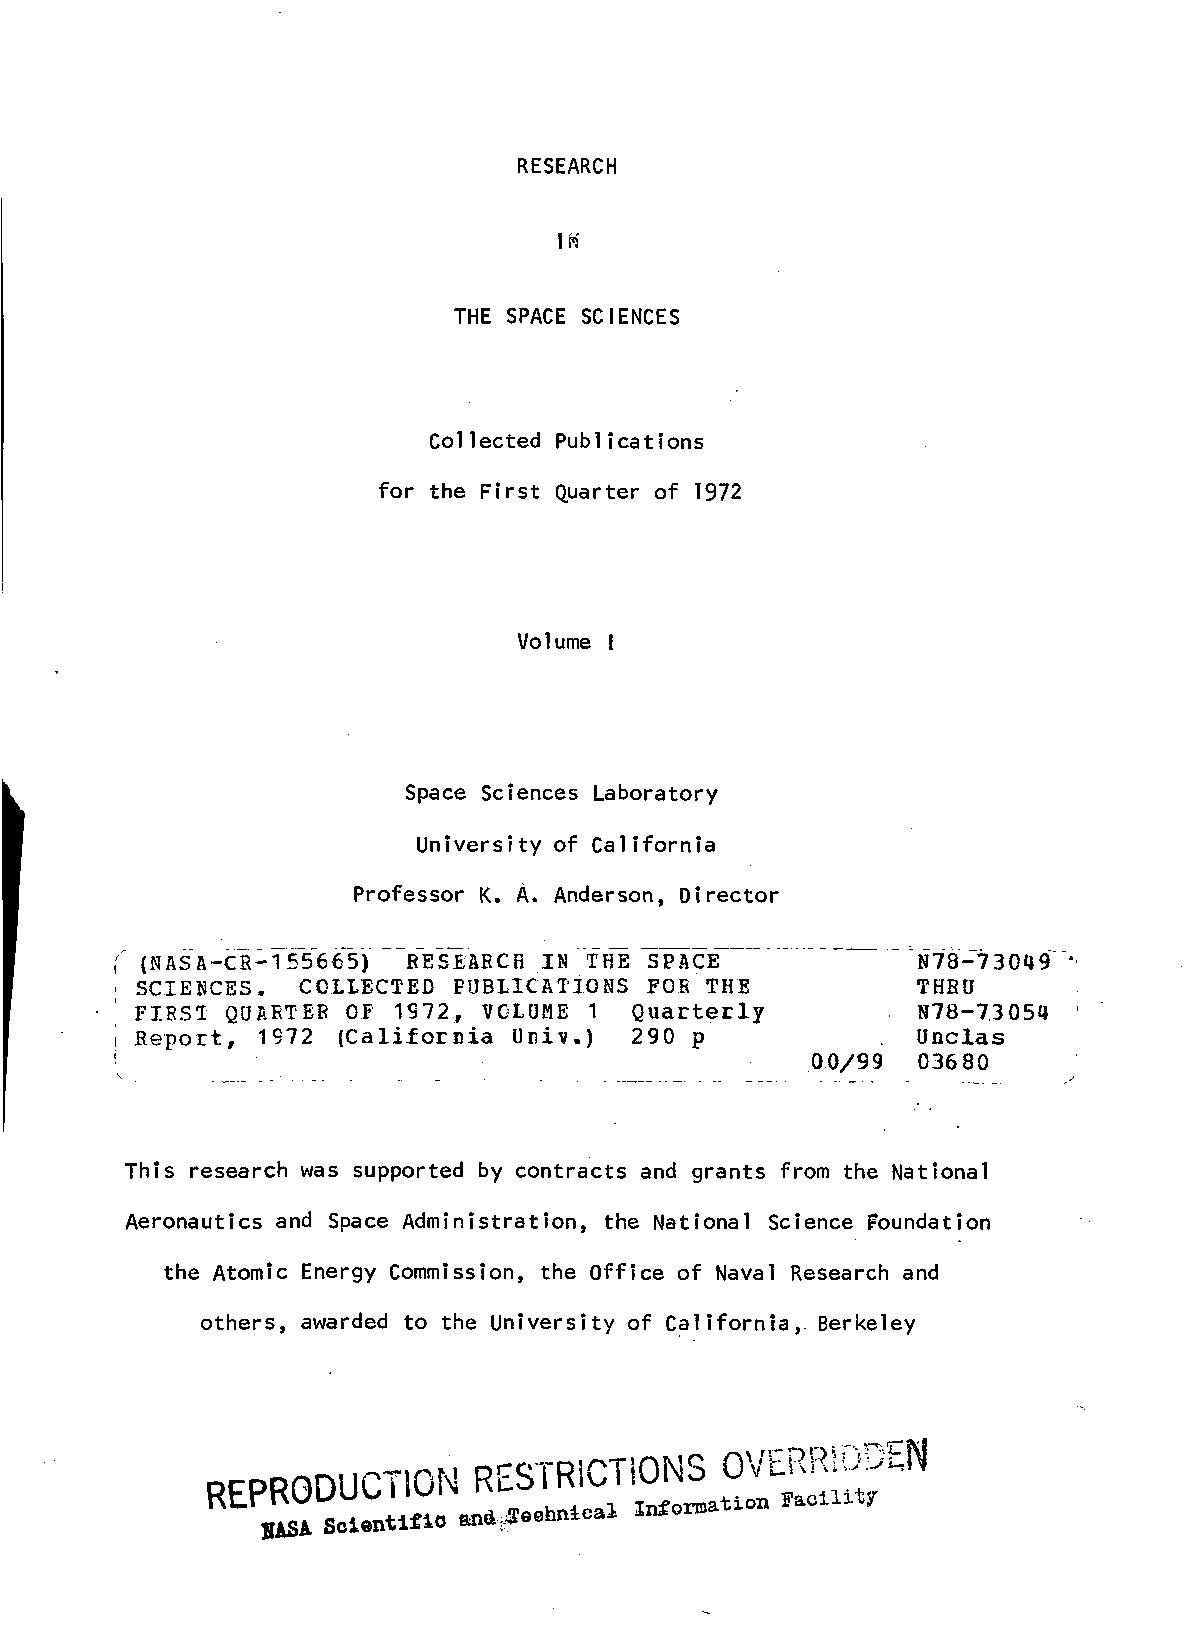 NON - Research in the space sciences. Collected publications for the first quarter of 1972, volume 1